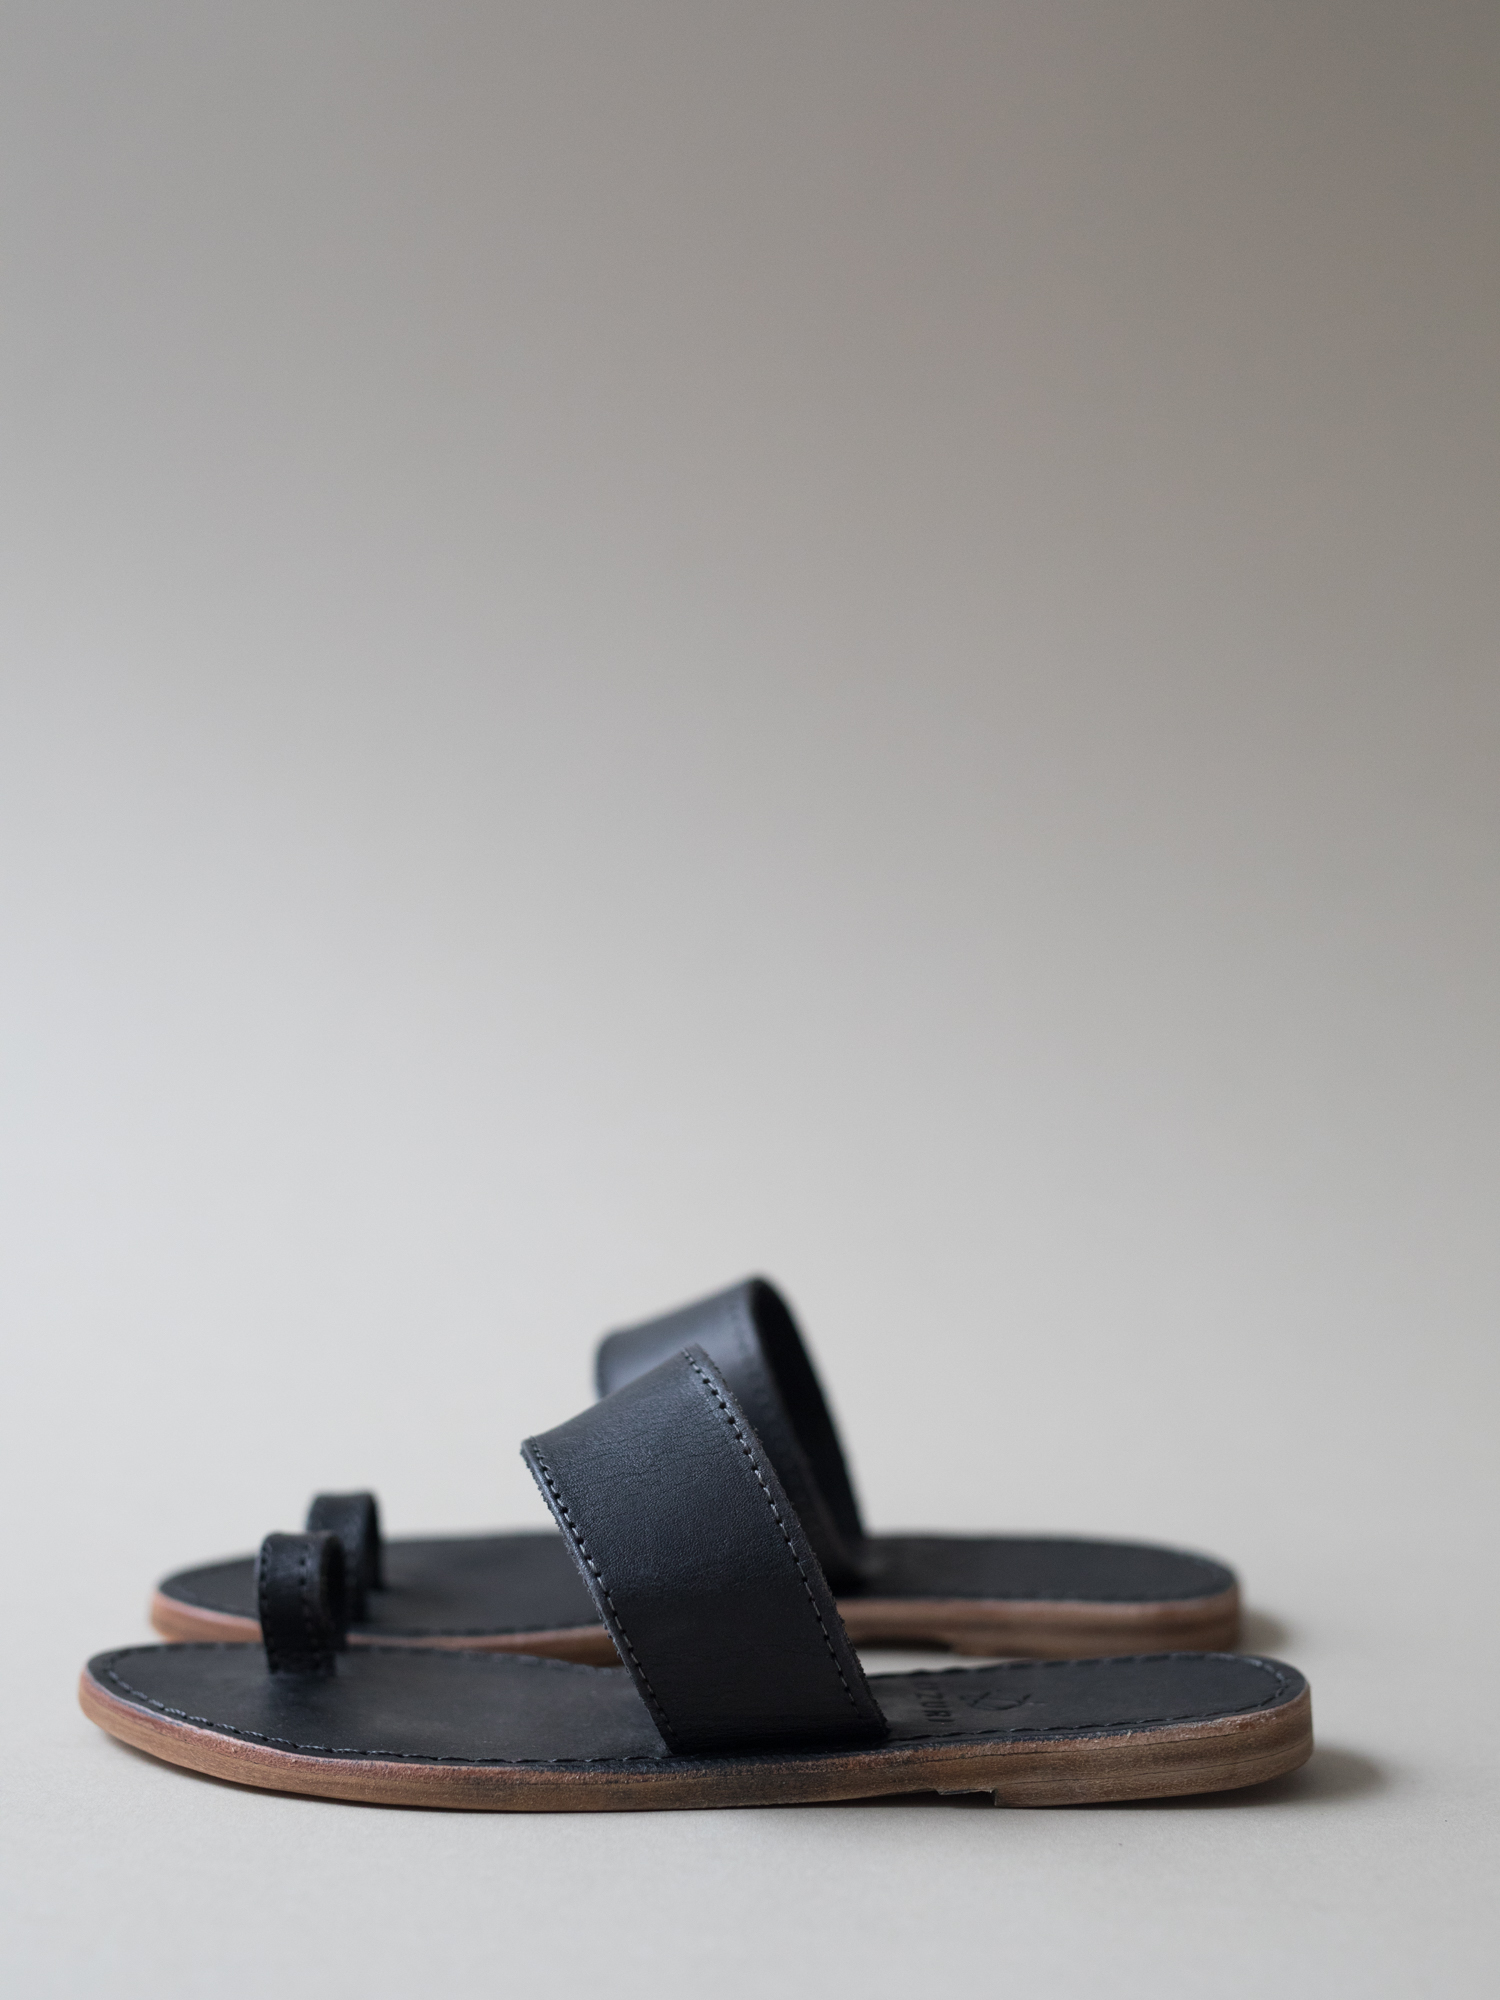 100% leather sandal, locally sourced + handcrafted